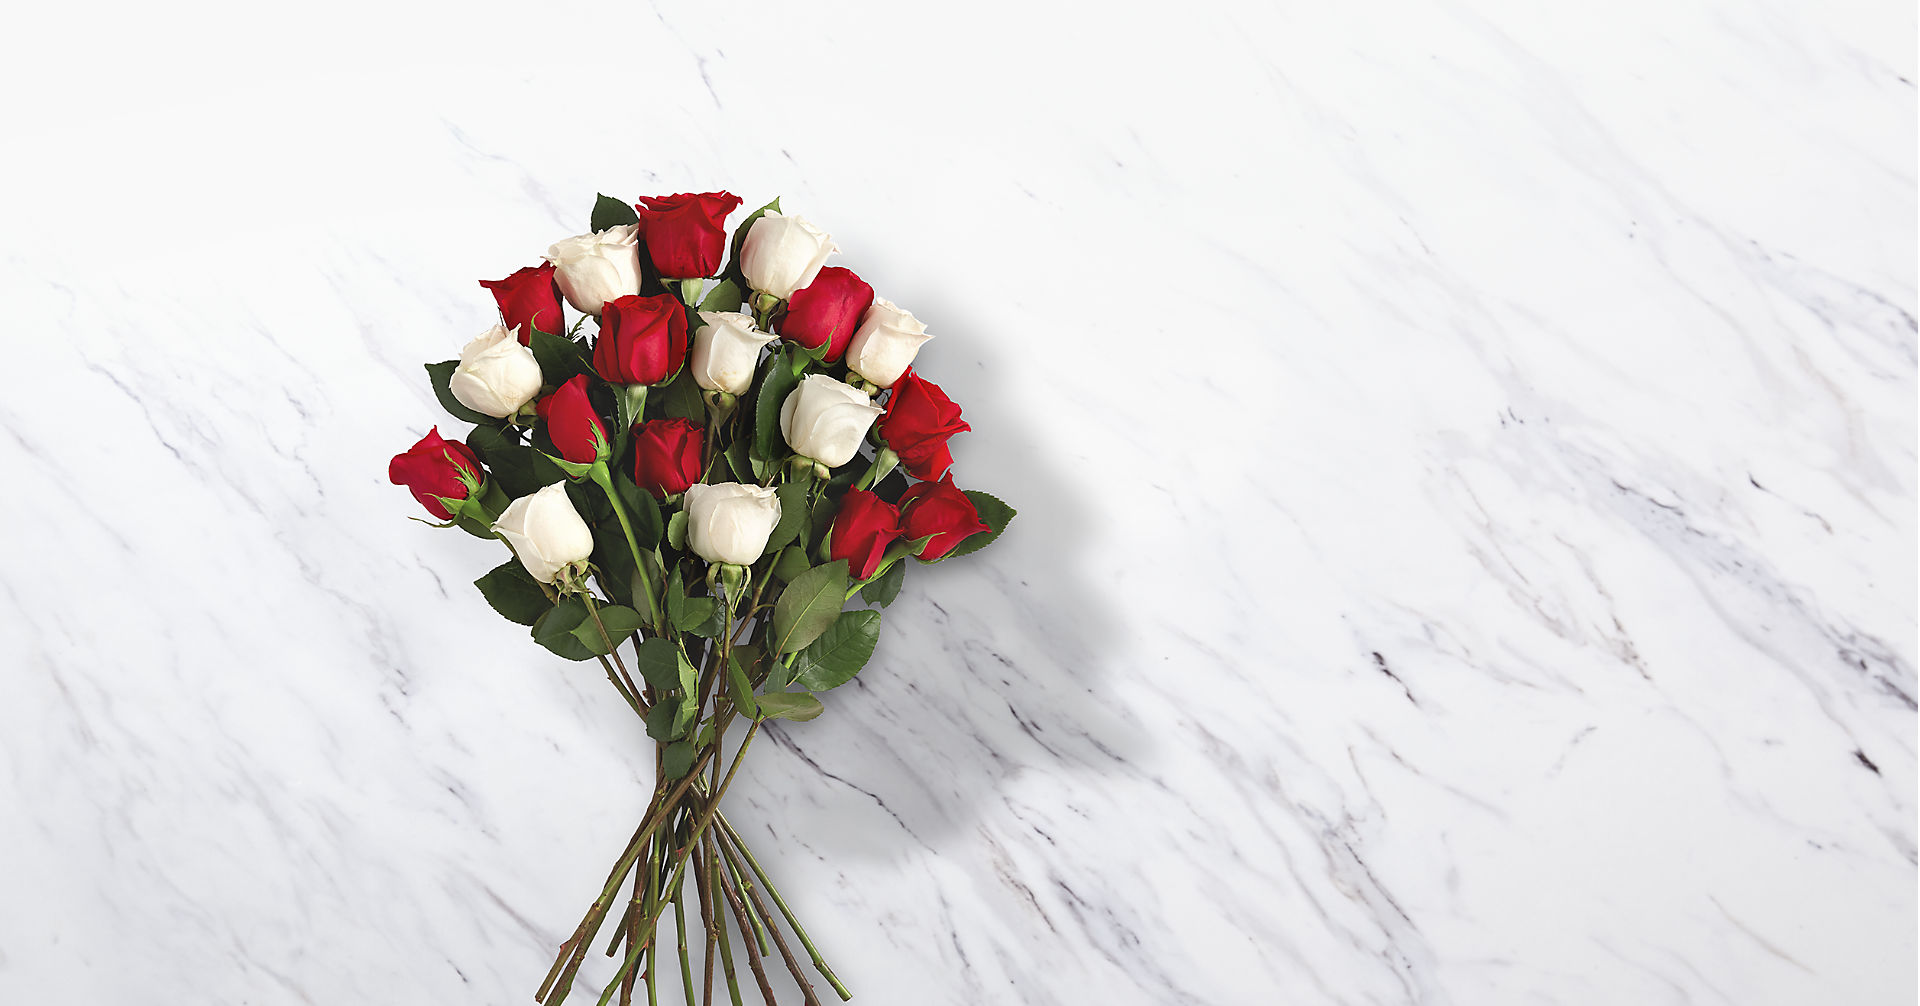 Candy Cane Roses - Image 2 Of 2